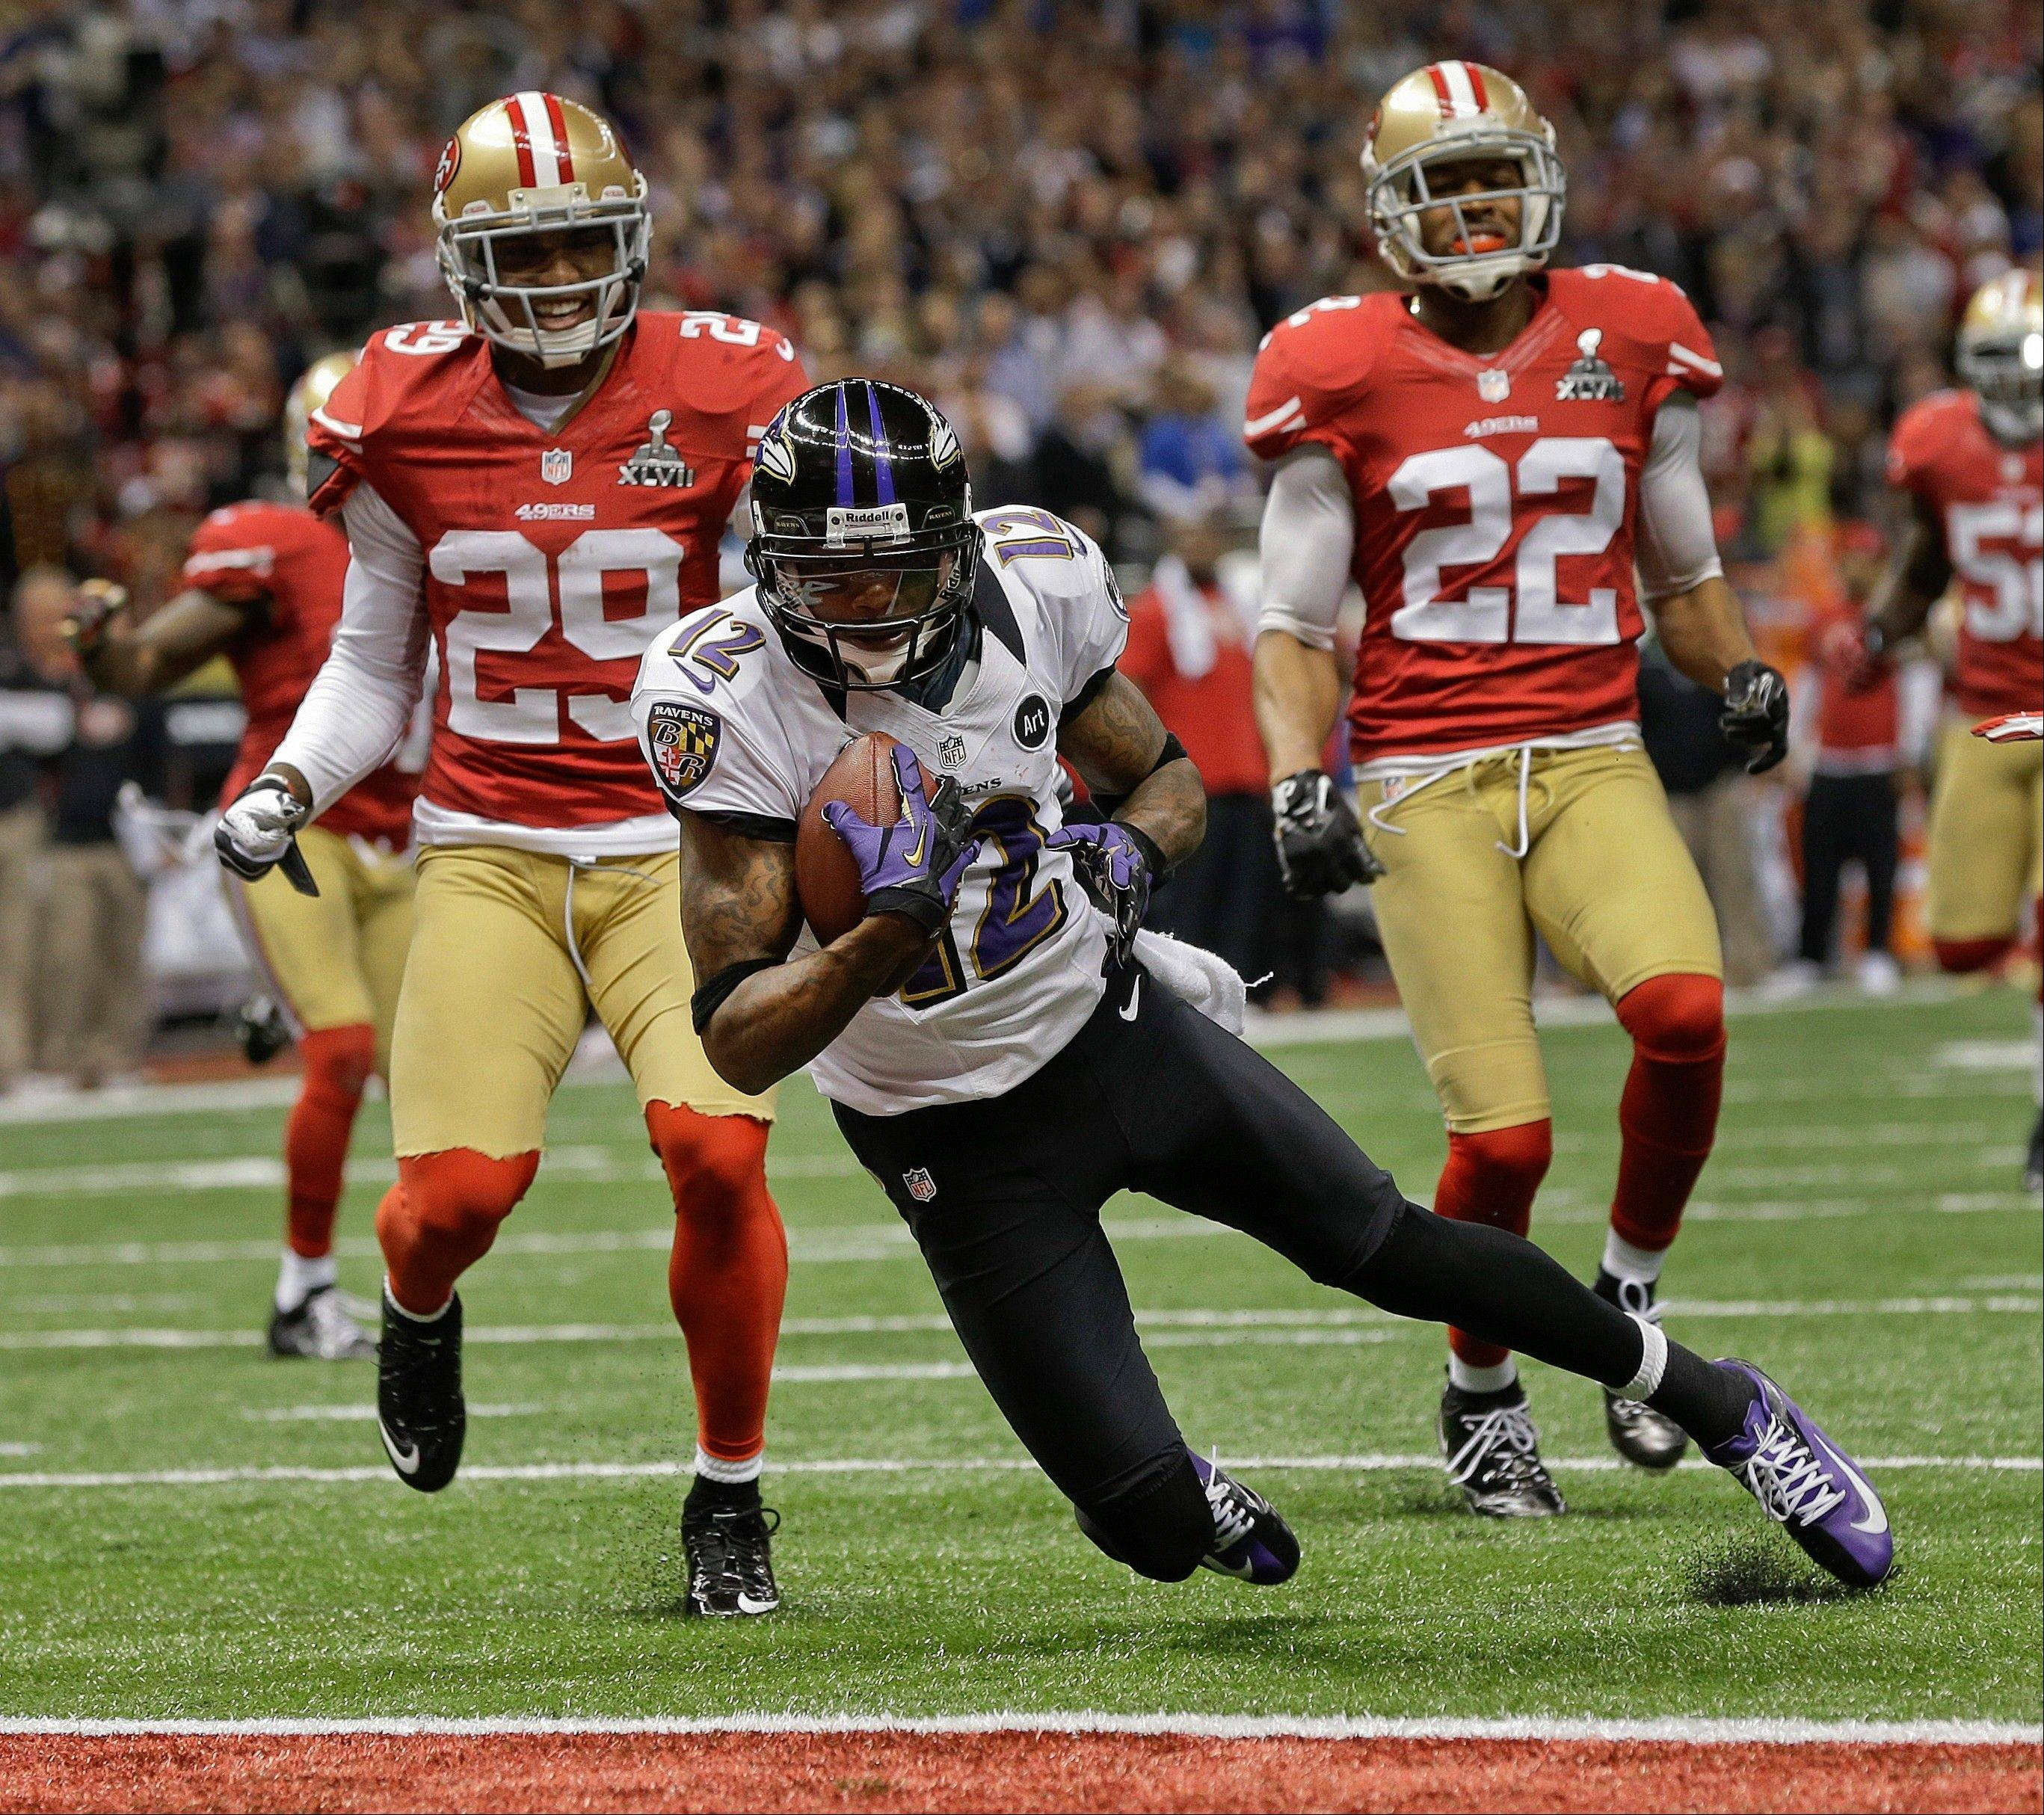 Baltimore Ravens wide receiver Jacoby Jones (12) crosses the goal line to score a 56-yard touchdown against San Francisco 49ers defensive back Chris Culliver (29) and cornerback Carlos Rogers (22) in the second quarter.